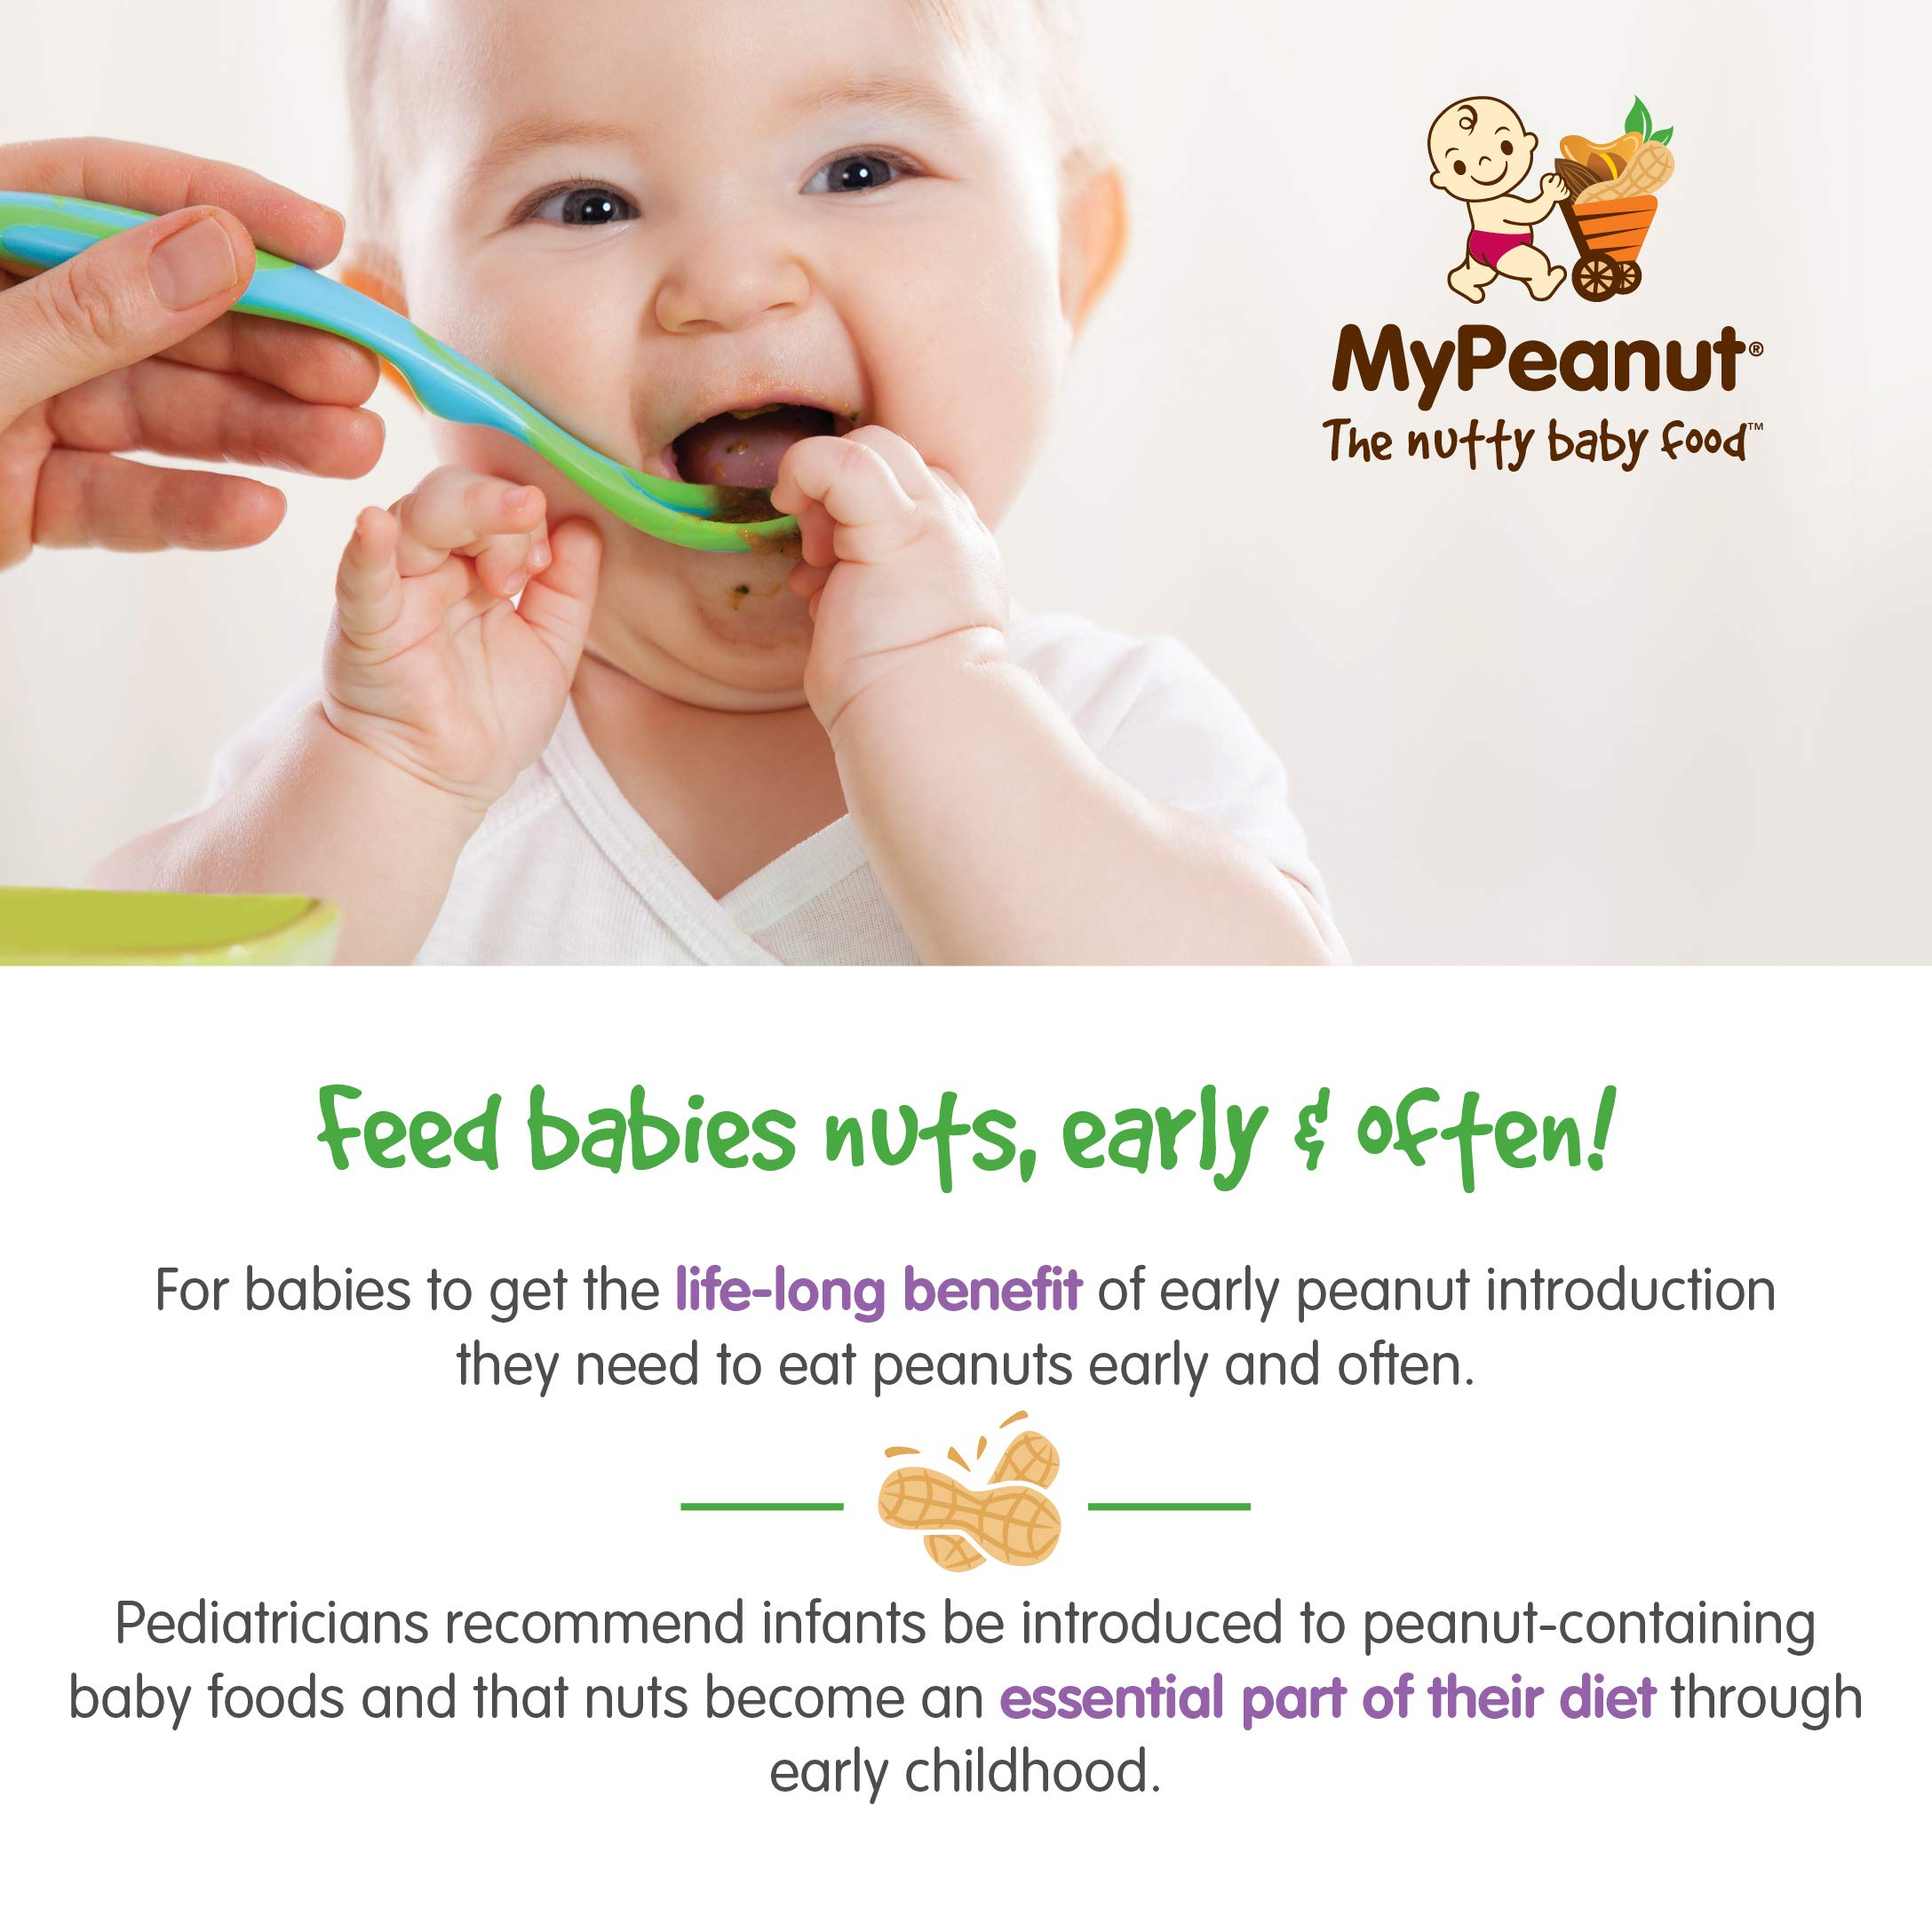 MyPeanut Baby Food, Organic Stage 1 Peanut and Apple Puree for Introducing and Feeding Babies and Toddlers Nuts, Non-GMO, BPA Free 3.5 oz Pouch, 24 Pack by MyPeanut (Image #4)